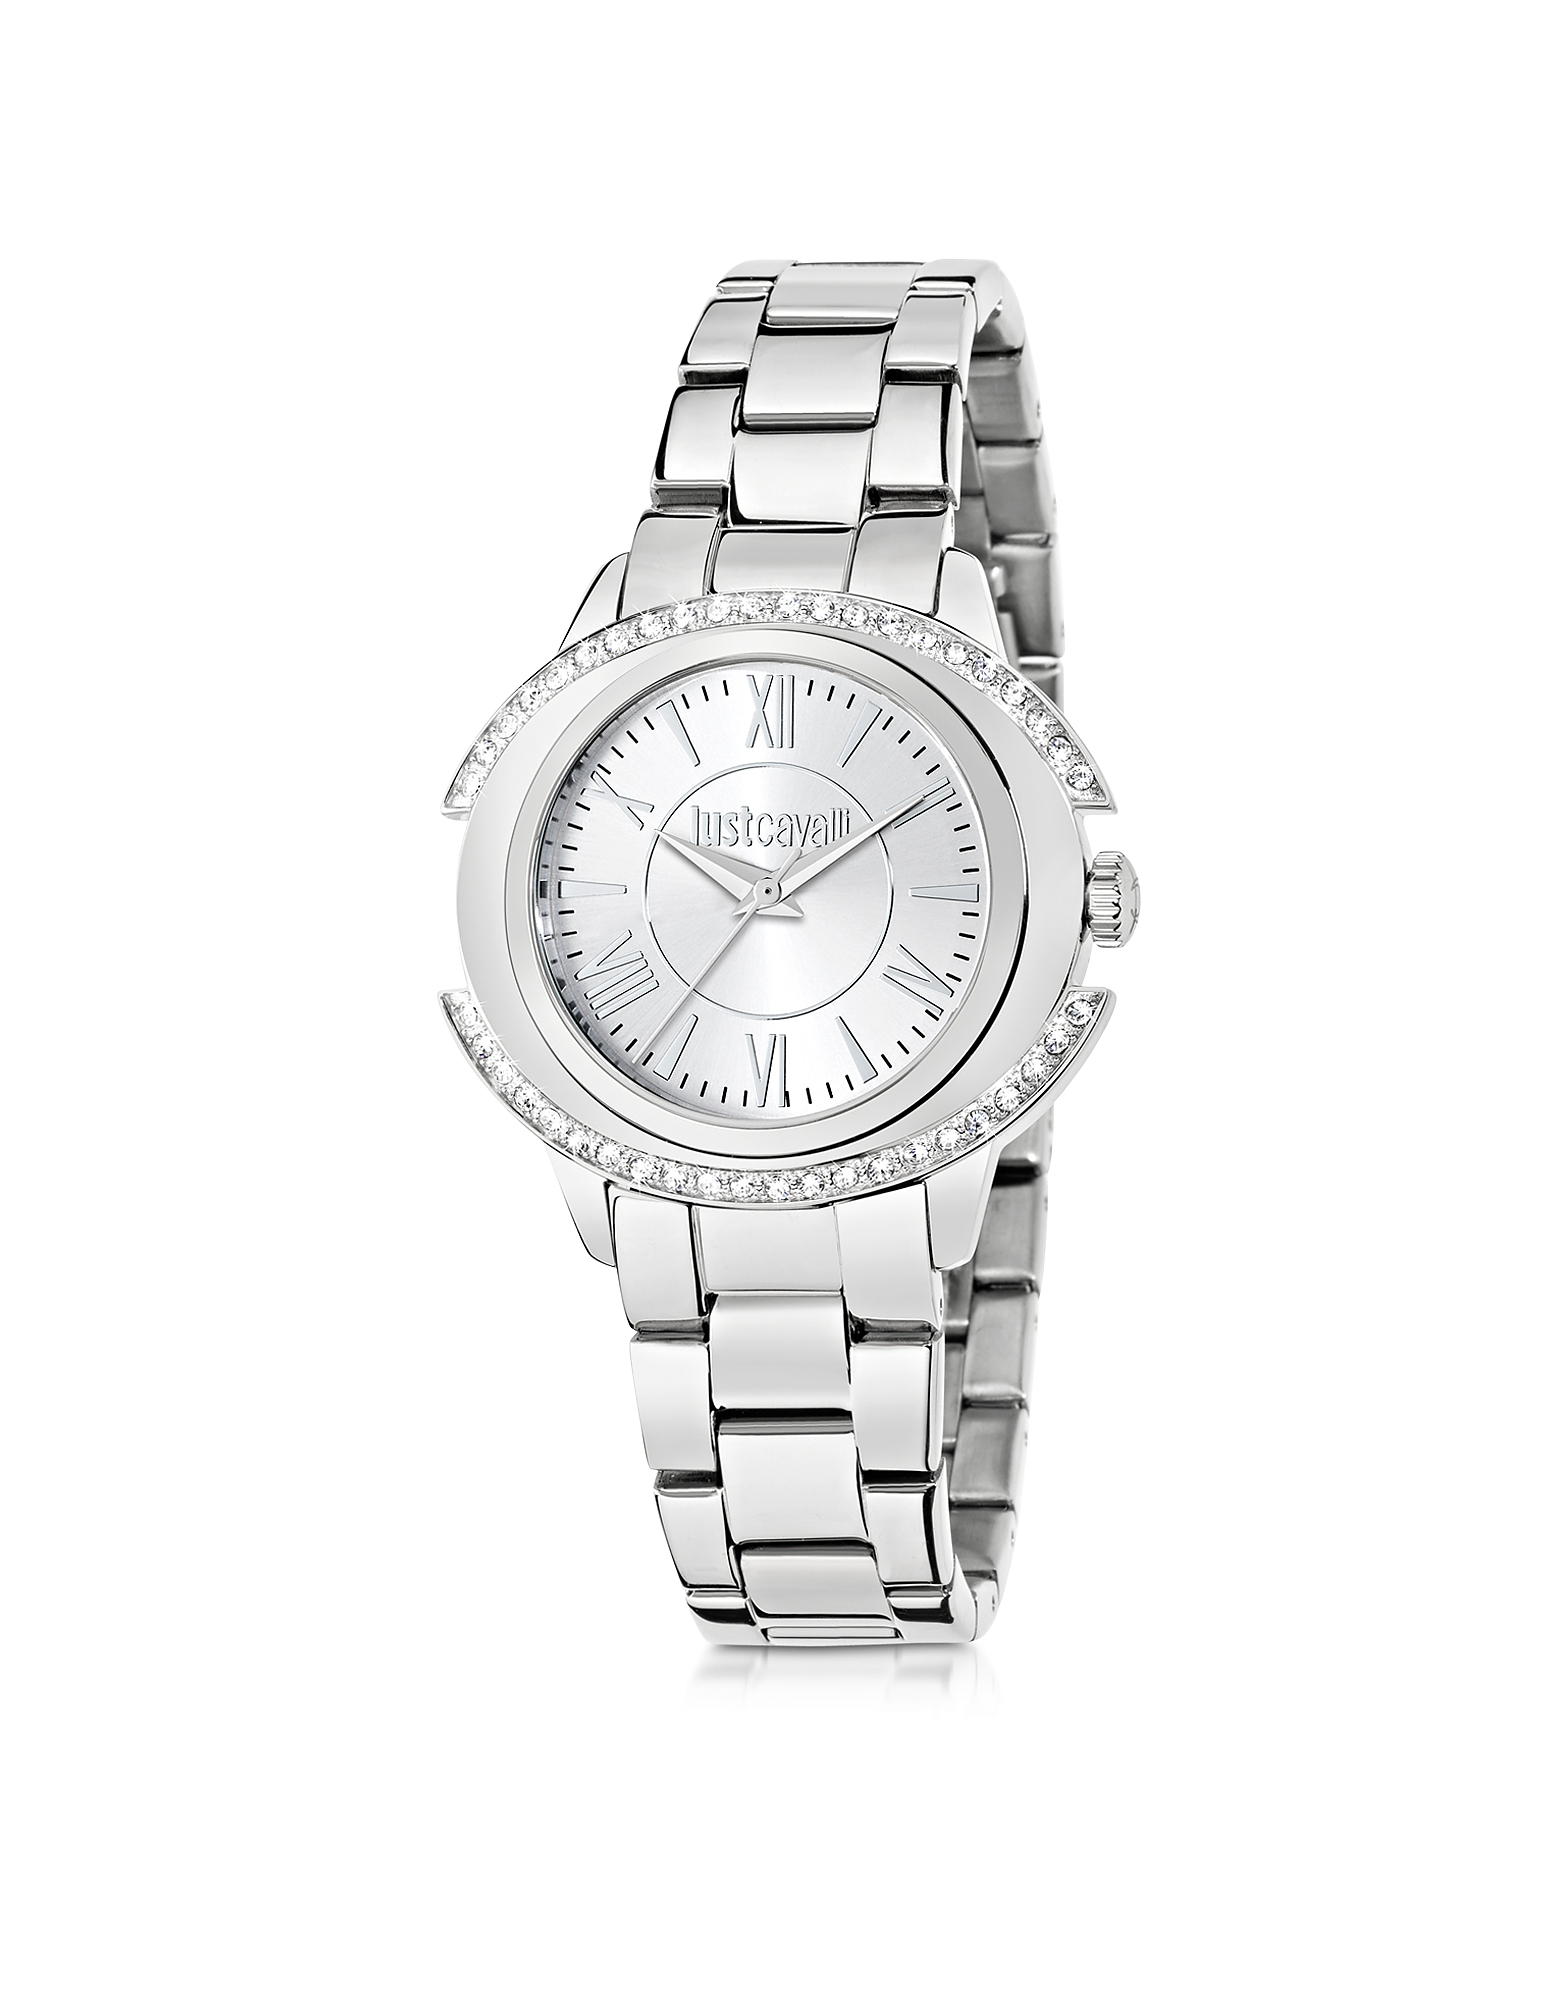 Just Cavalli Women's Watches, Just Decor Silver Tone Stainless Steel Women's Watch